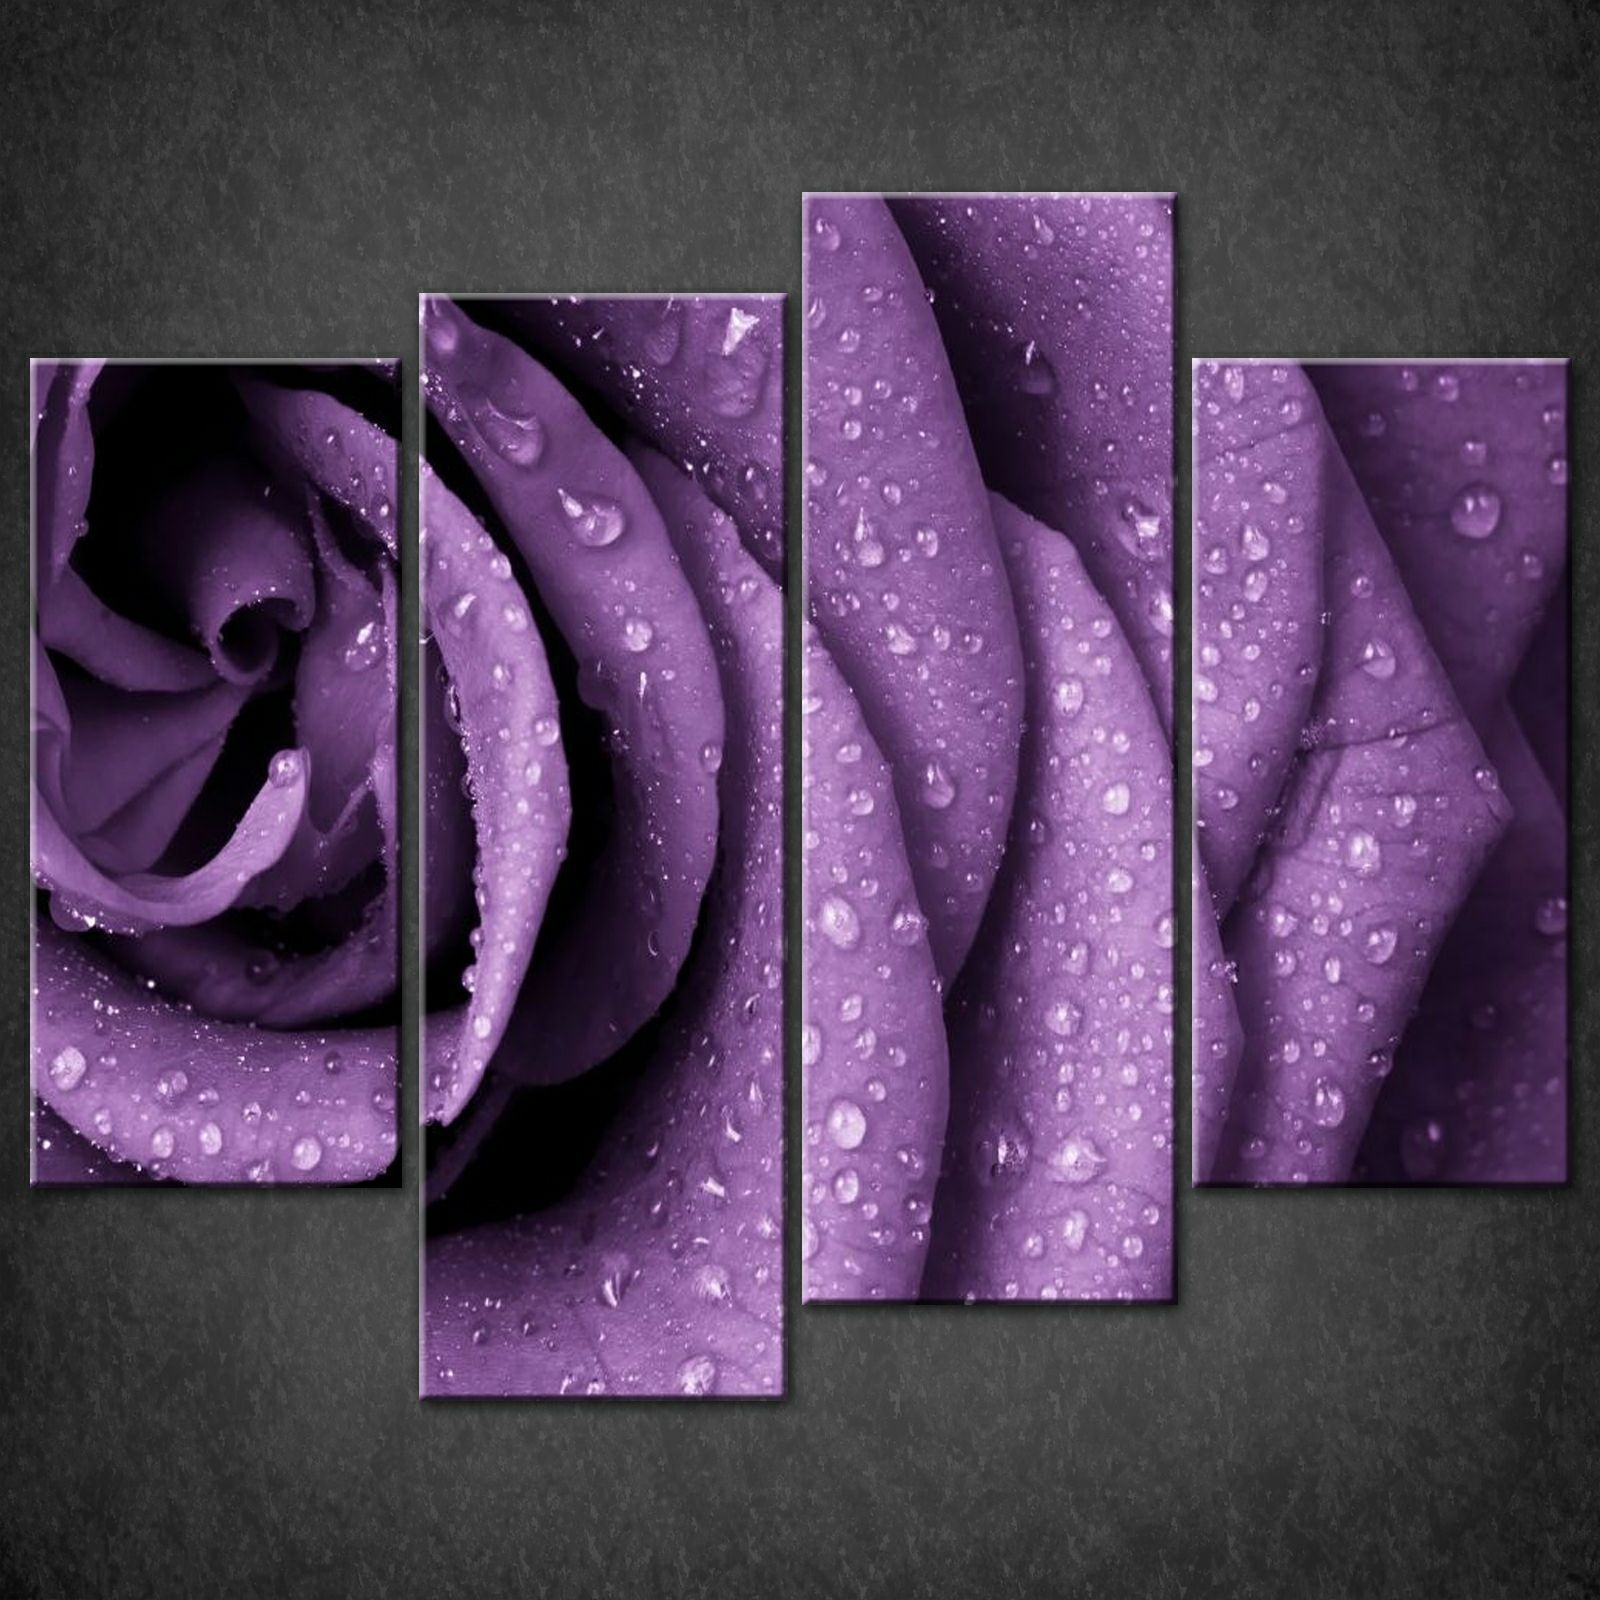 purple rose split canvas wall art pictures prints larger sizes available canvas print art. Black Bedroom Furniture Sets. Home Design Ideas